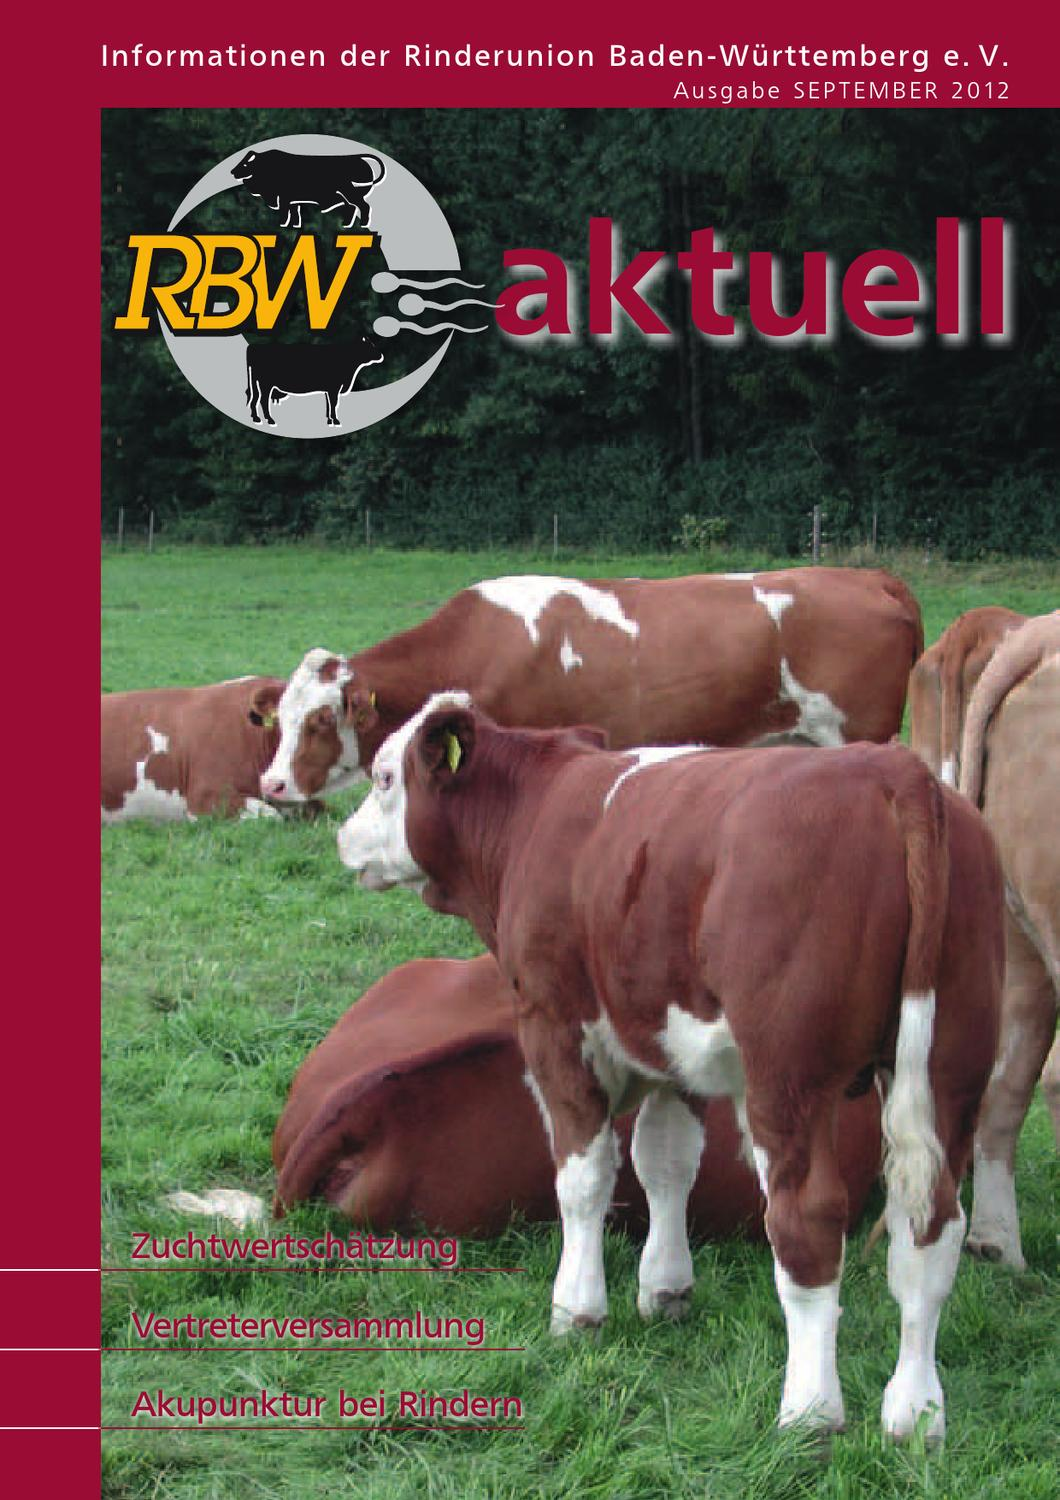 RBW aktuell 9/2012 by Rinderunion Baden-Wuerttemberg e.V. - issuu